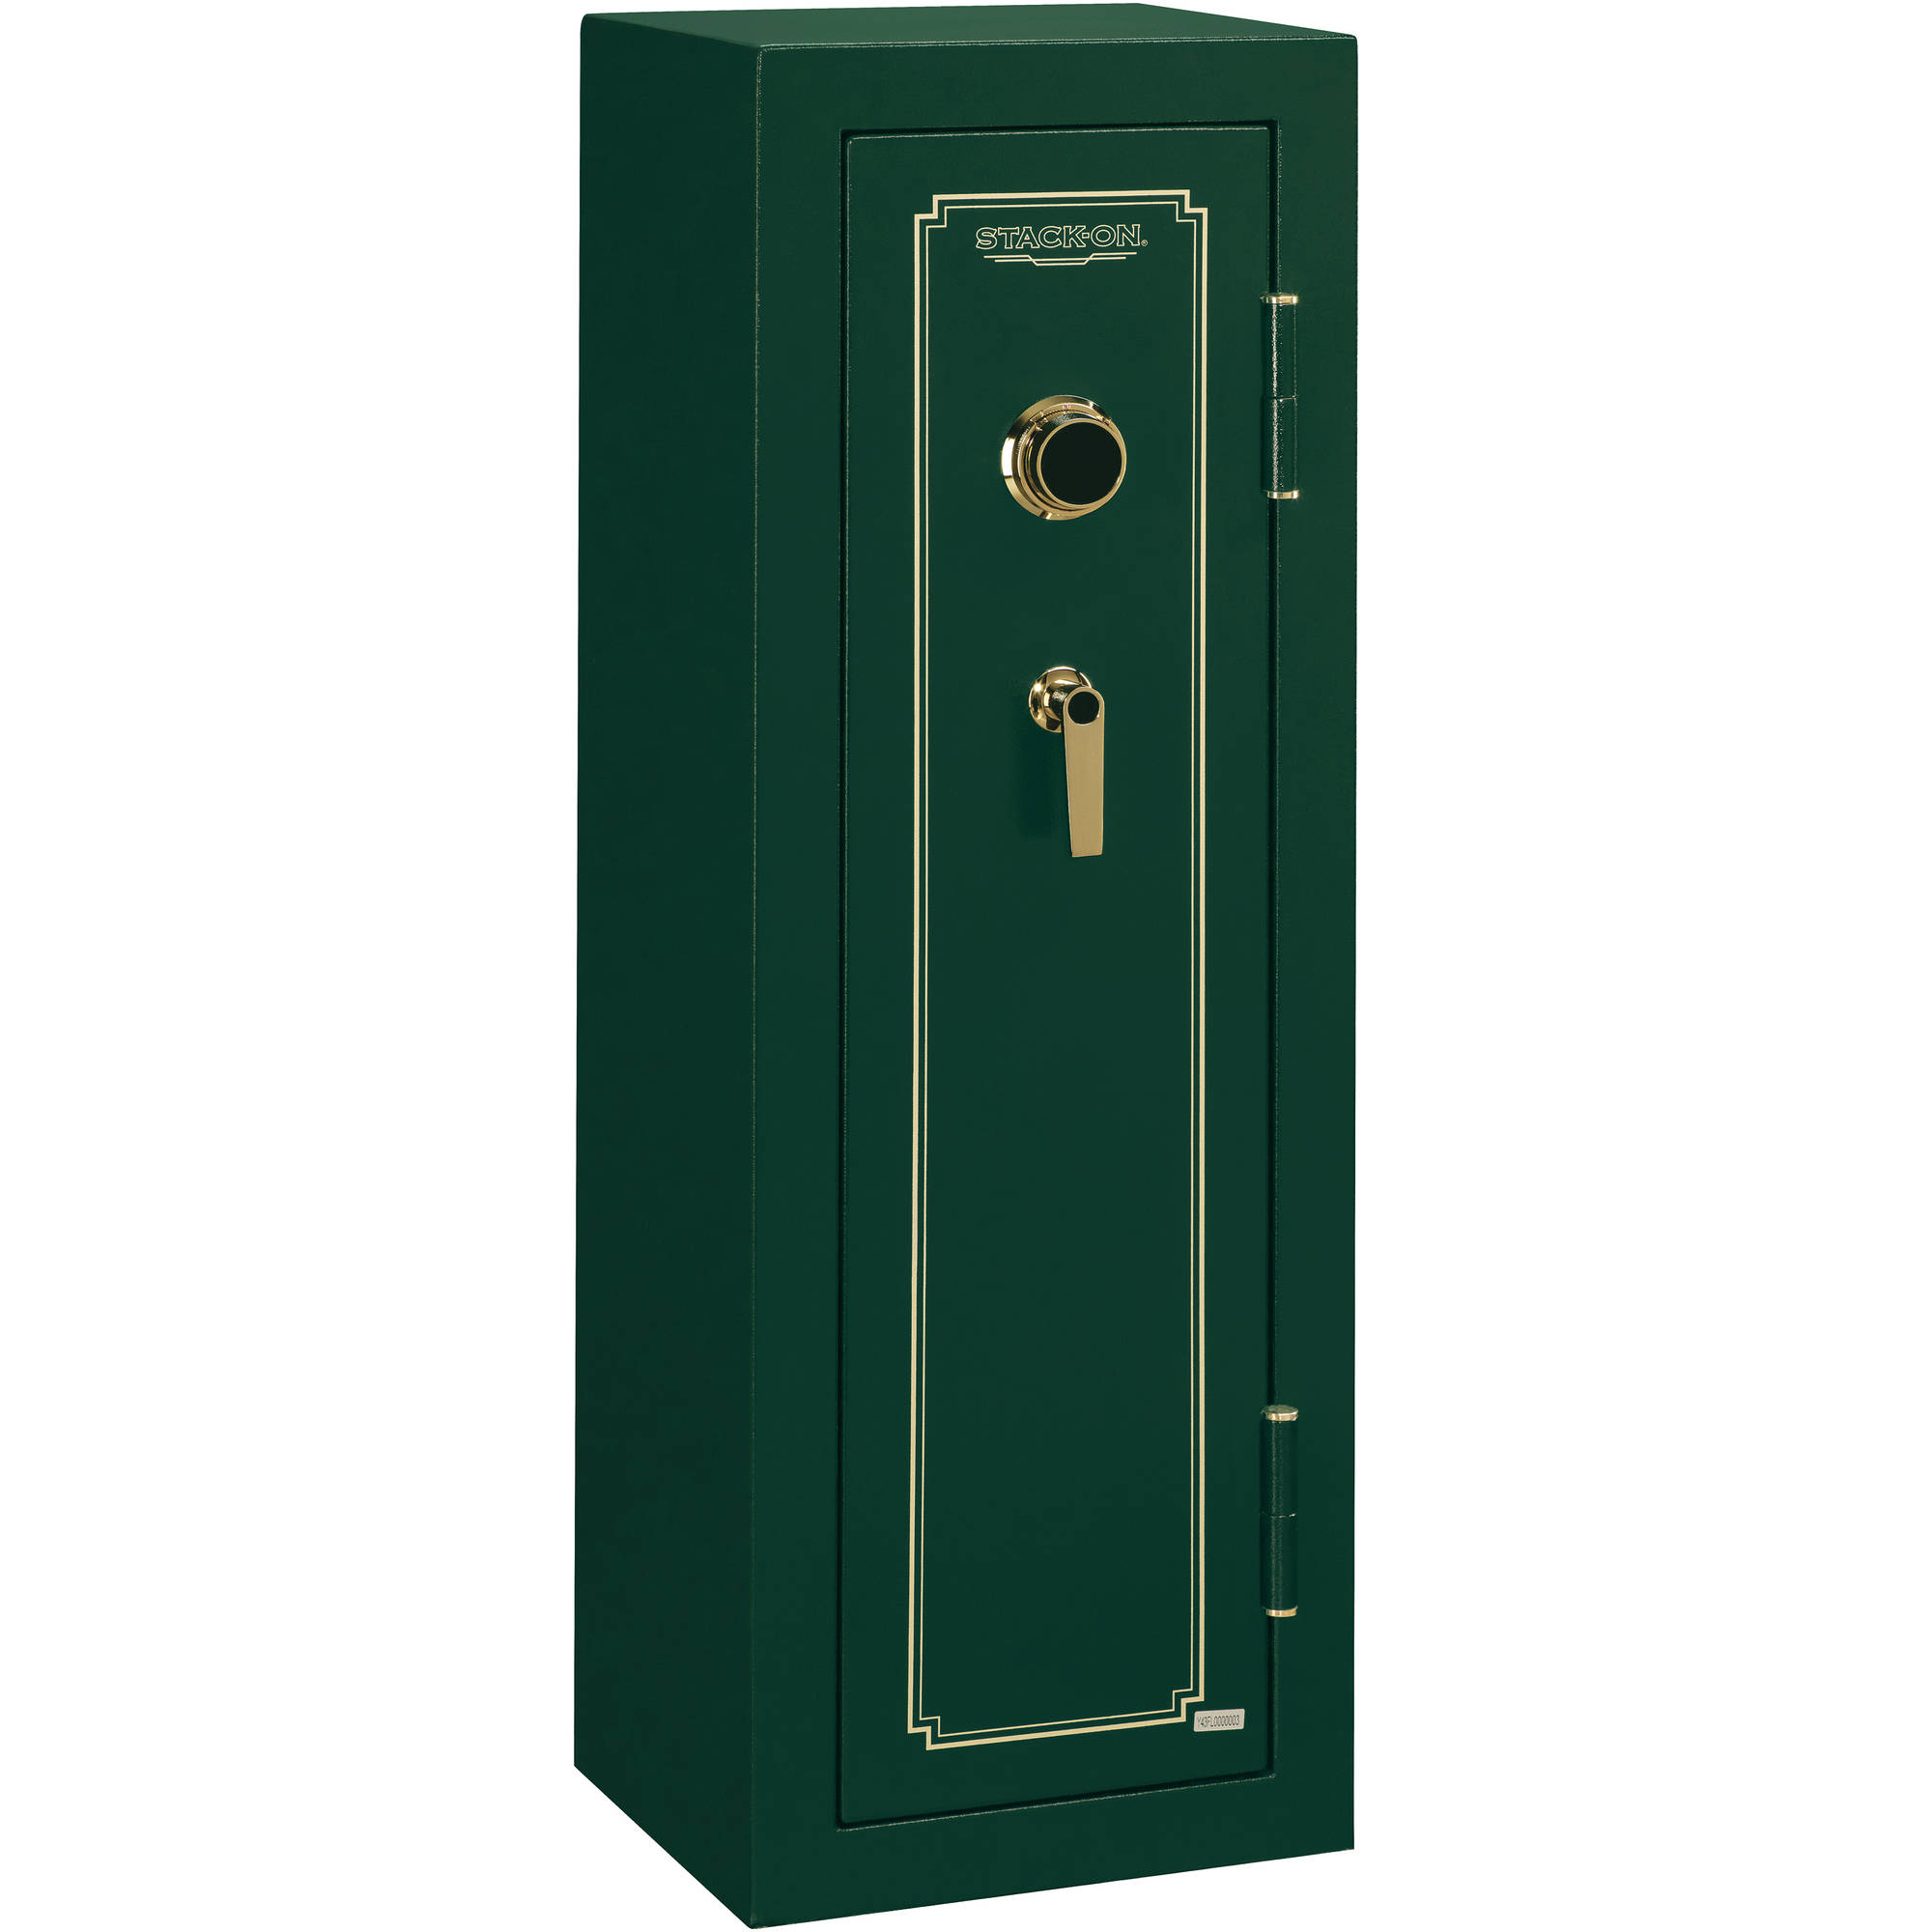 Stack-On 8 Gun Fire Resistant Security Safe with Combination Lock FS-8-MG-C Hunter Green by Generic